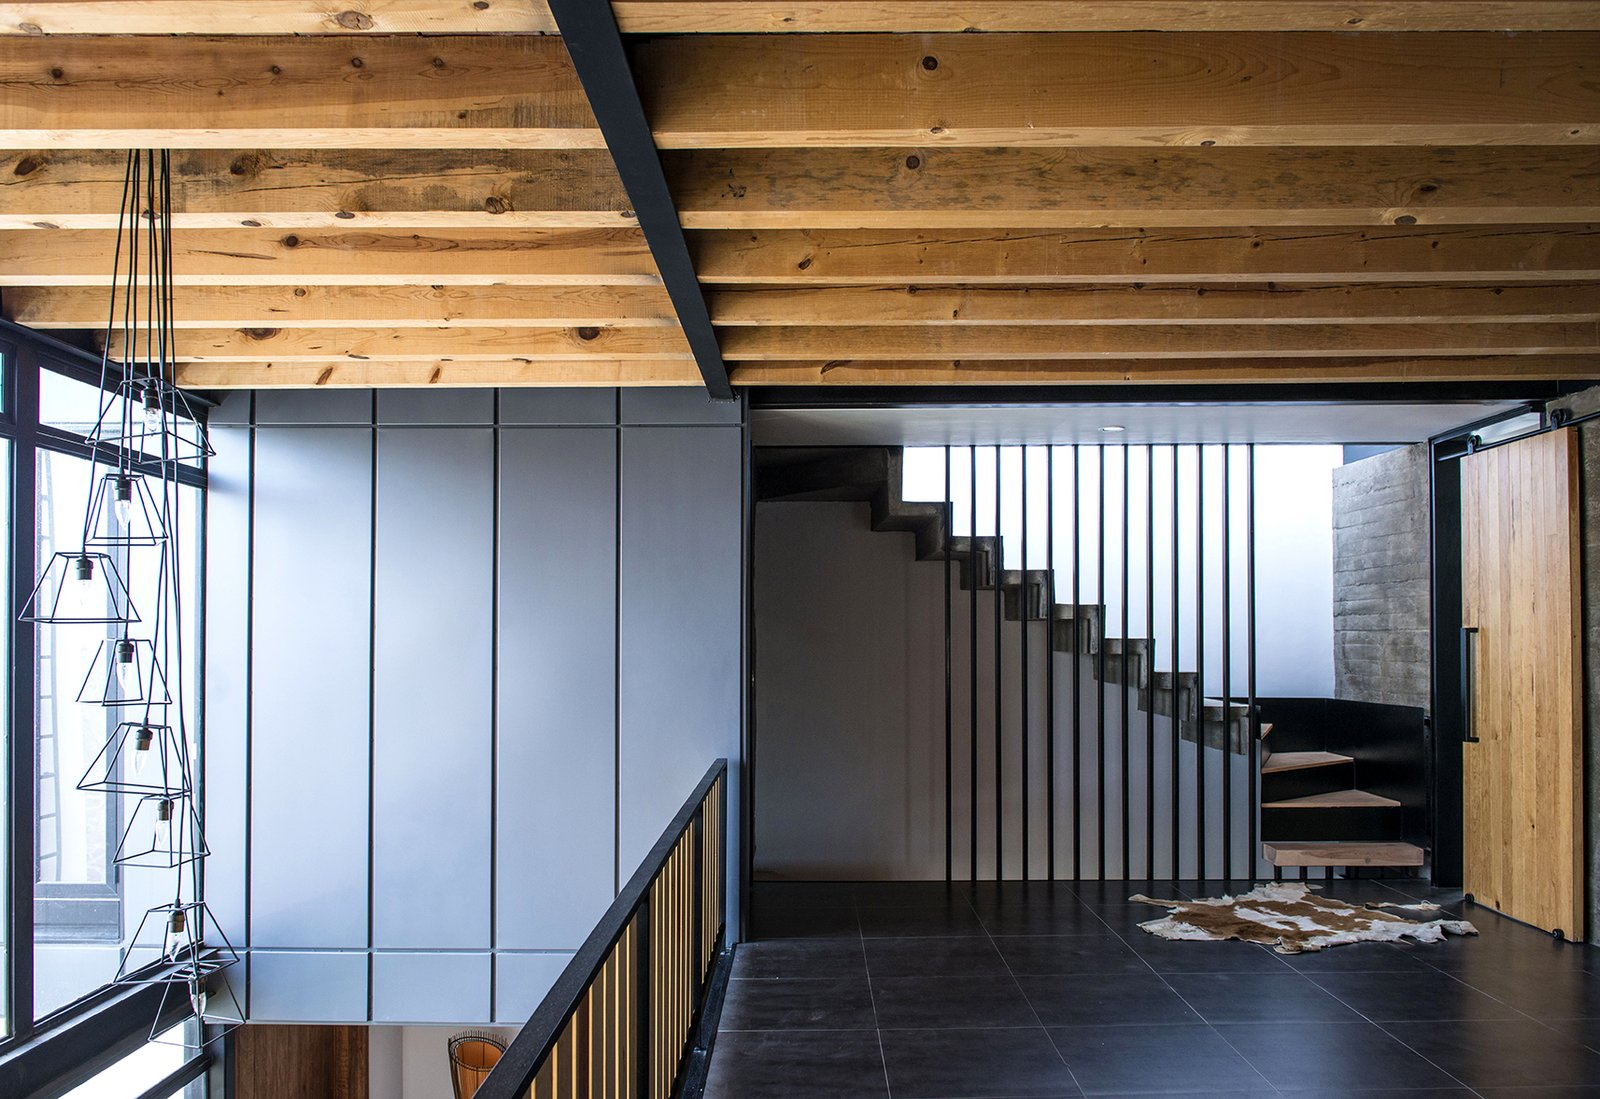 Double Height - TV Room - Stairs Tagged: Staircase, Wood Tread, Concrete Tread, Metal Tread, and Metal Railing.  Casa MA by e|arquitectos